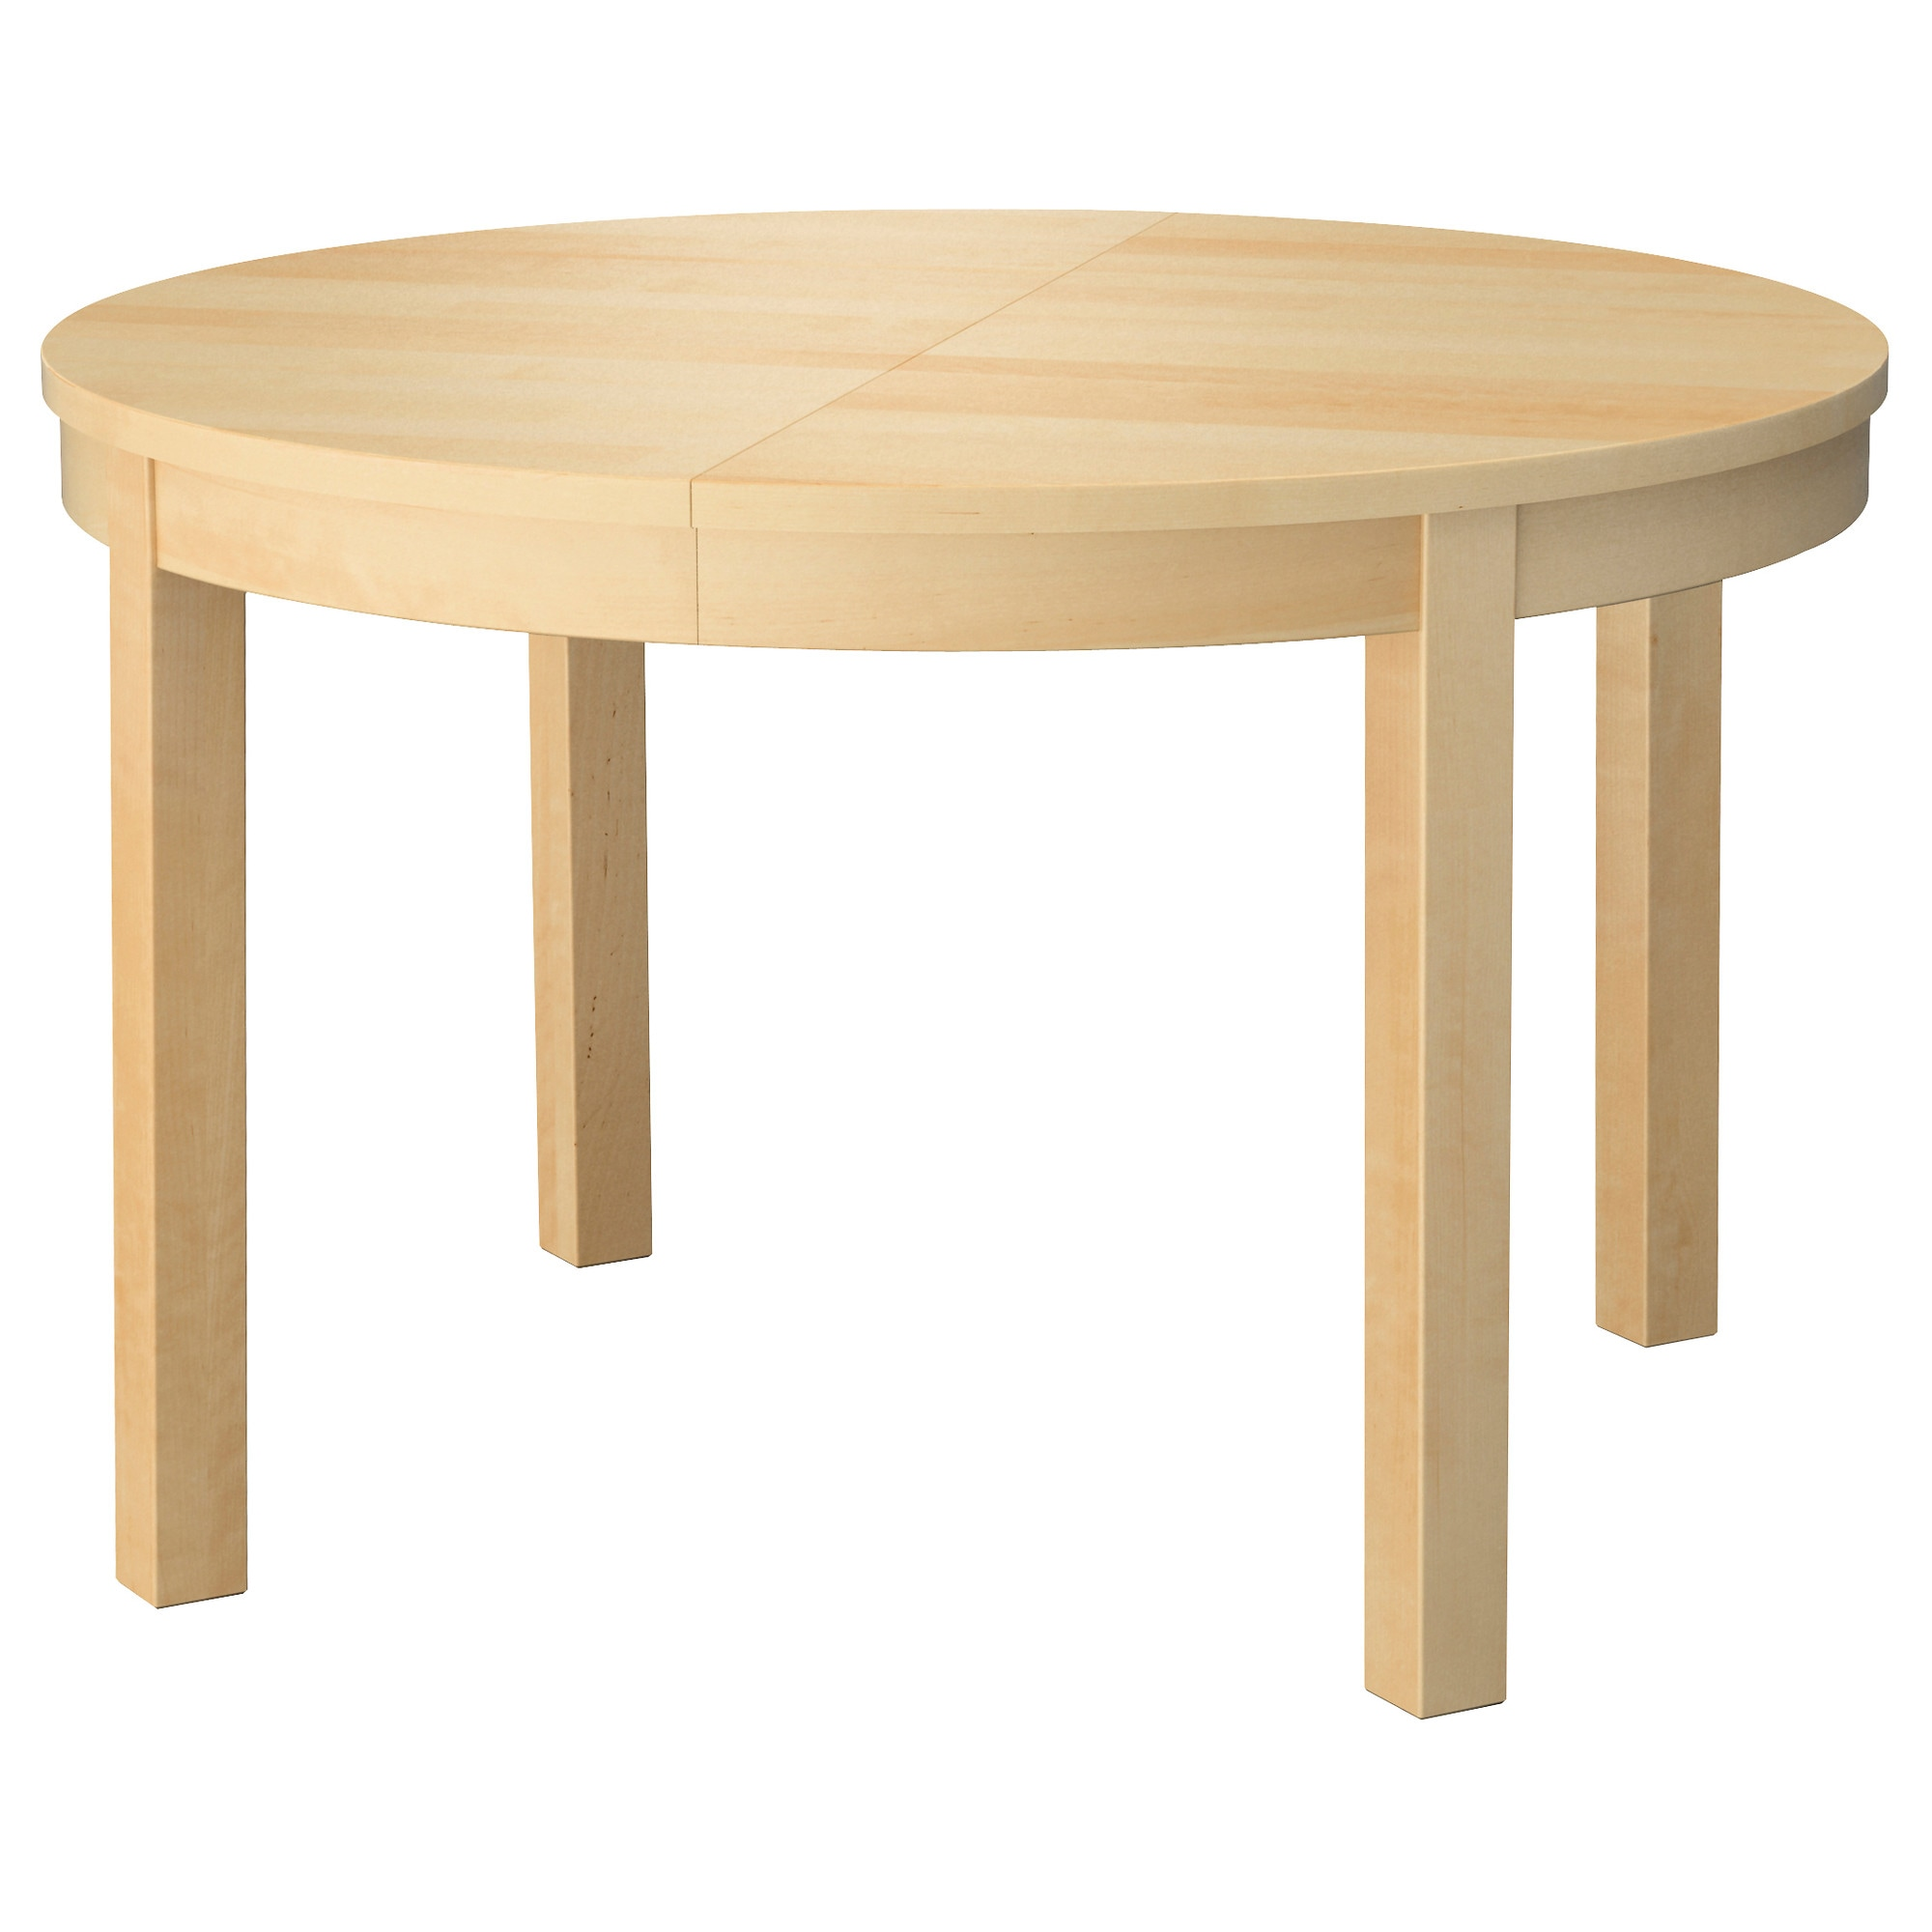 Table ronde ikea - Tables rondes avec rallonges ikea ...